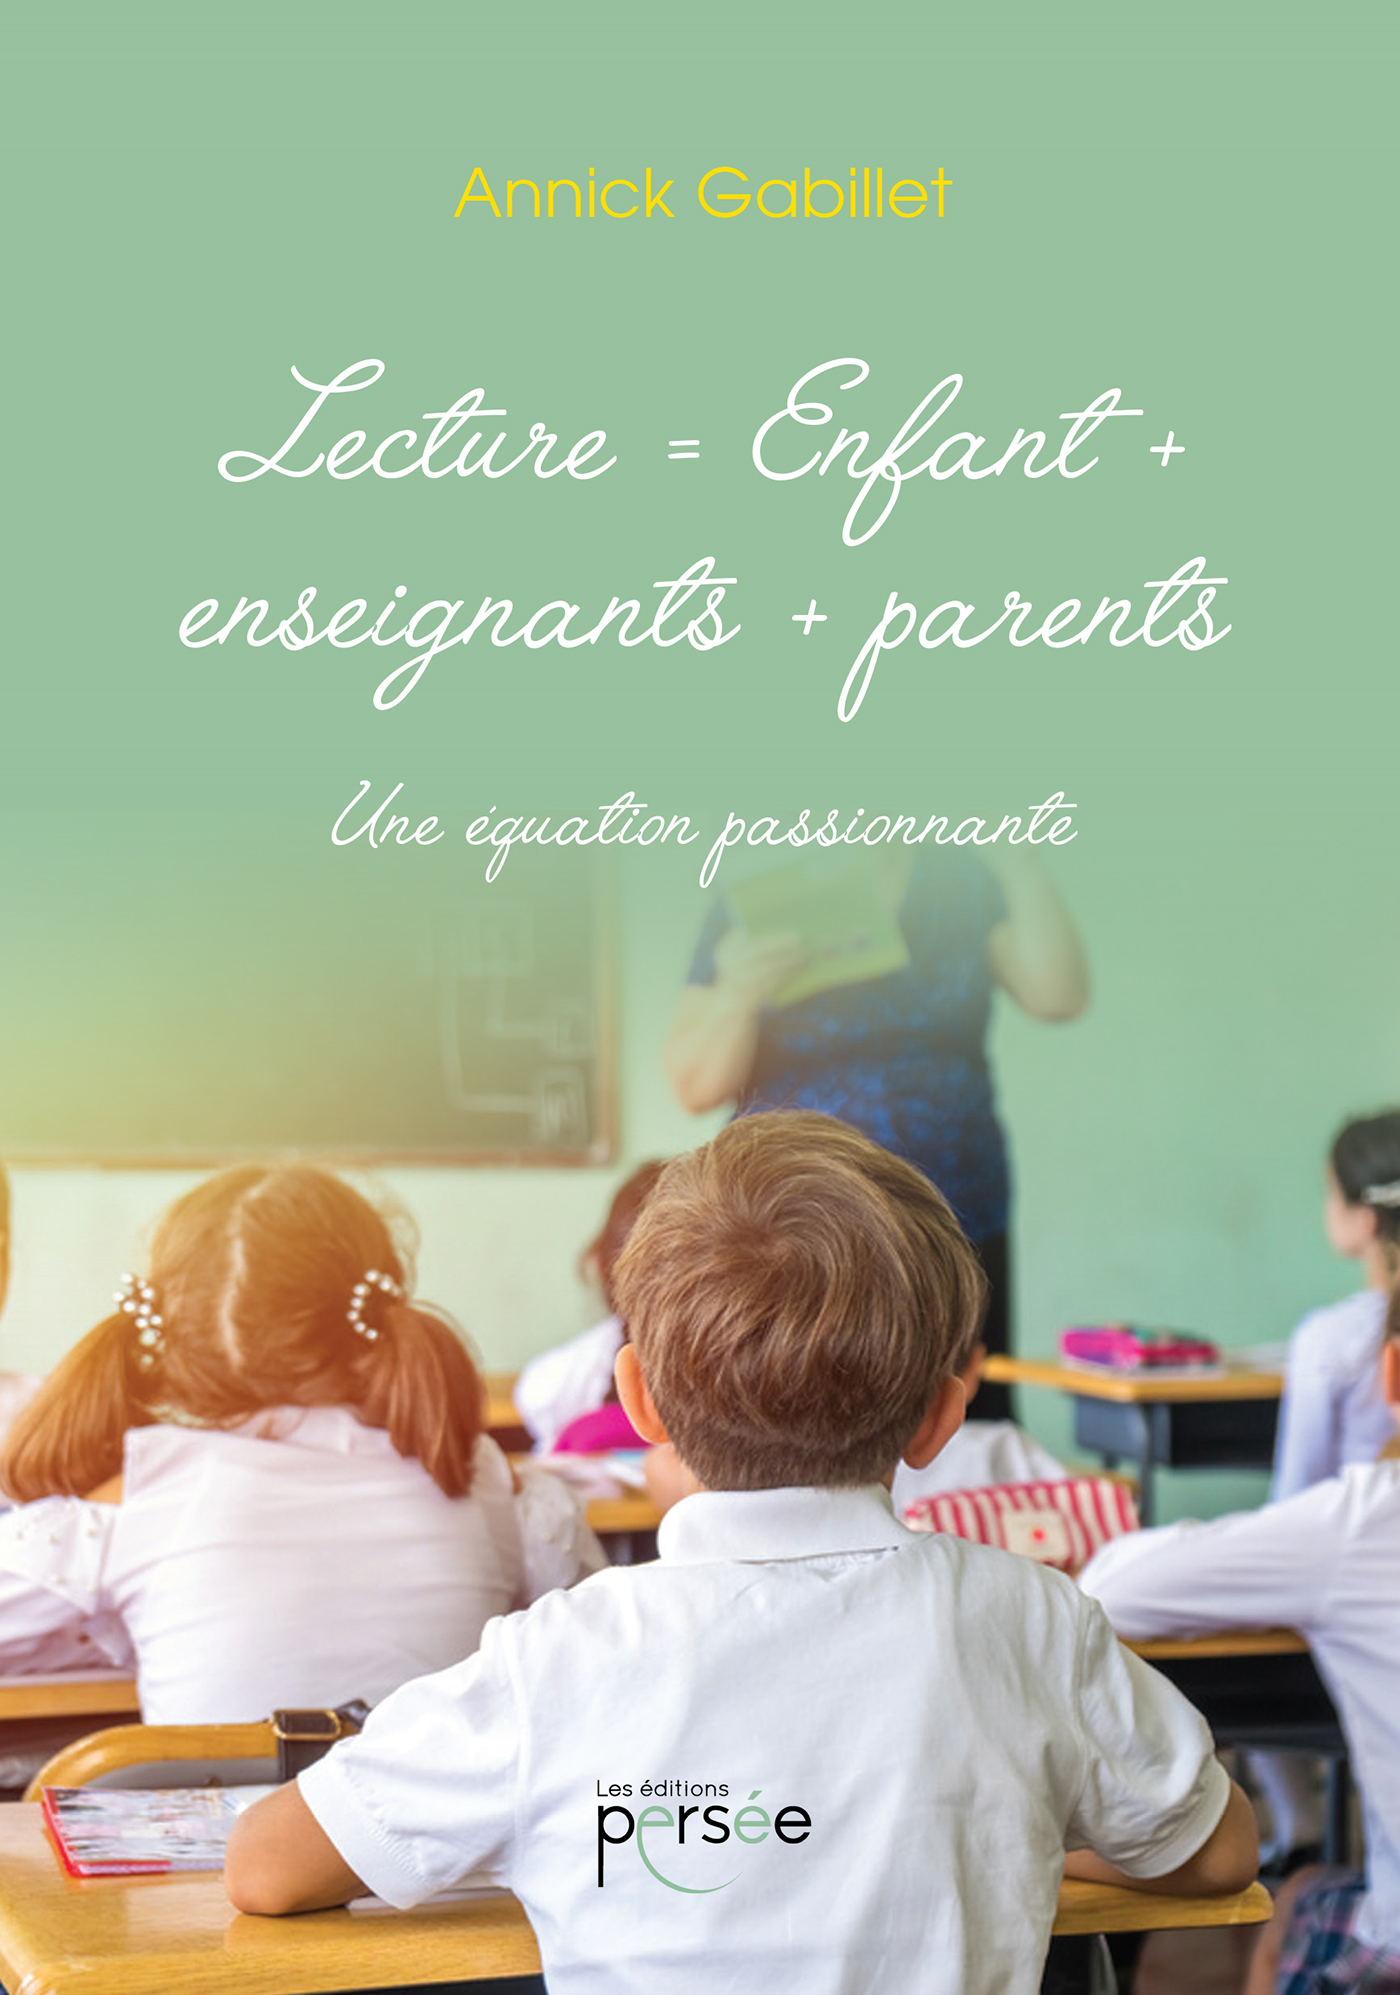 Lecture = Enfant + enseignant + parents